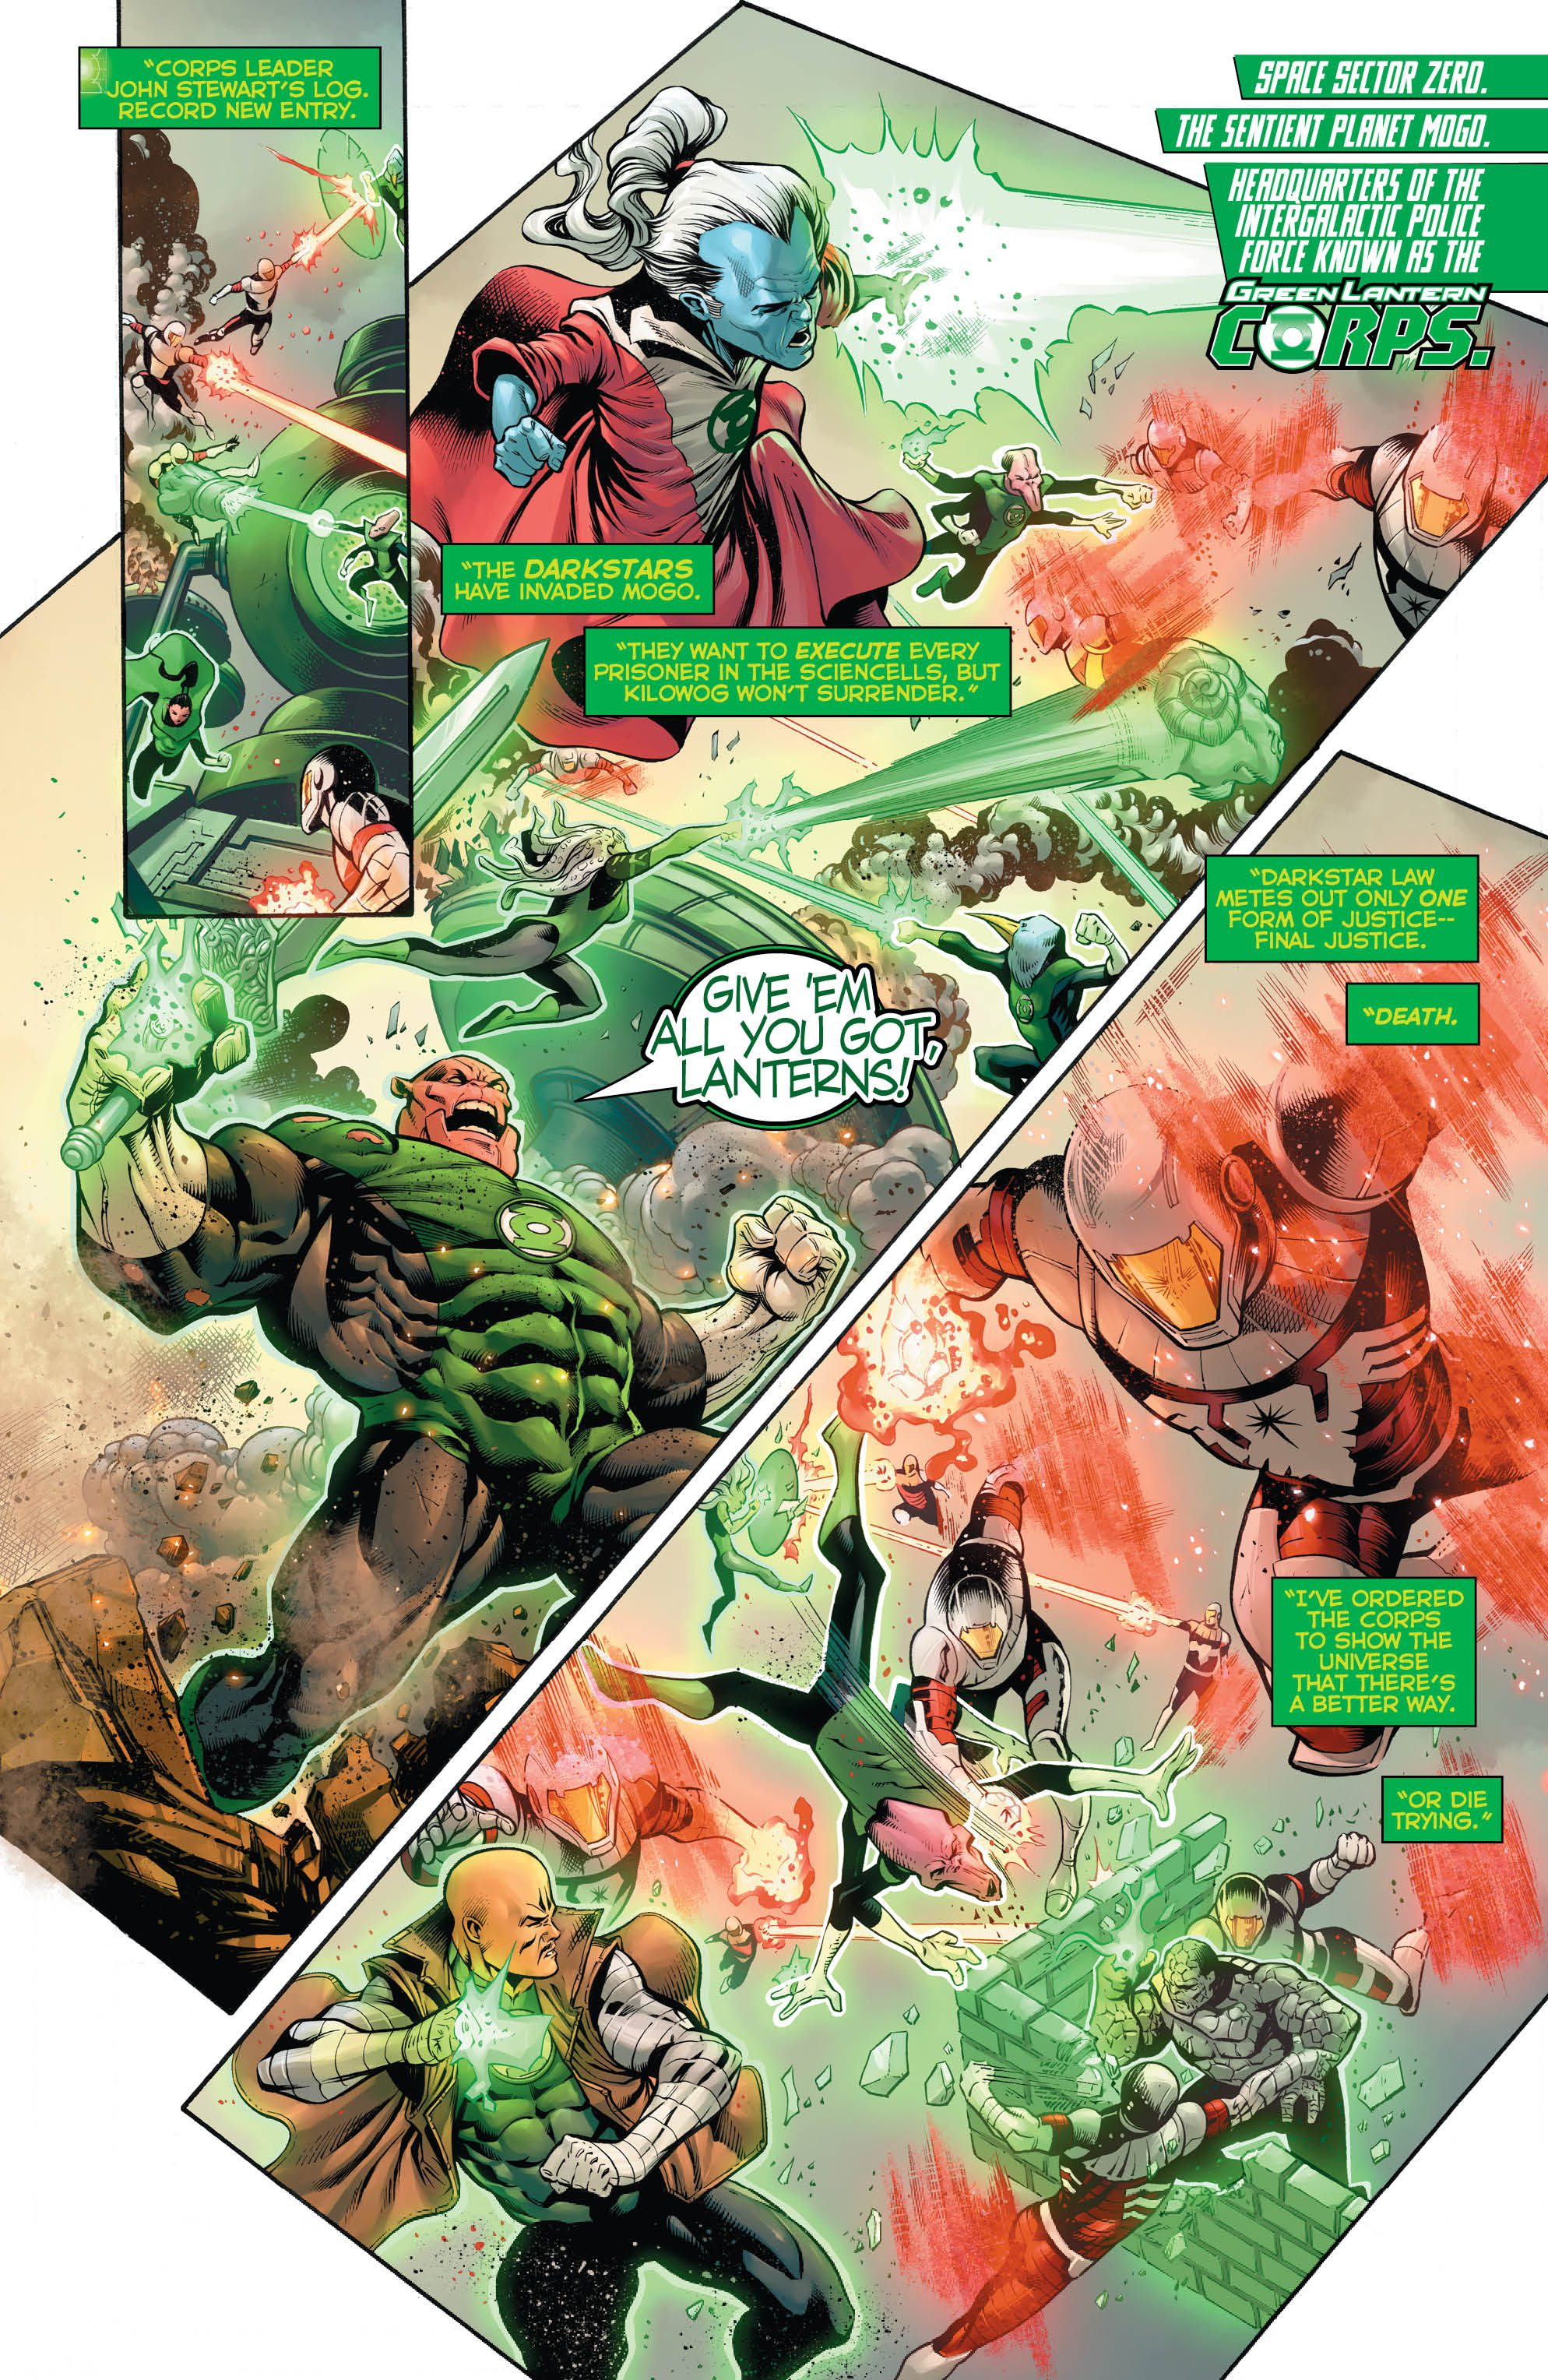 The Green Lantern Corps stand their ground against the Darkstars in this action-packed issue!